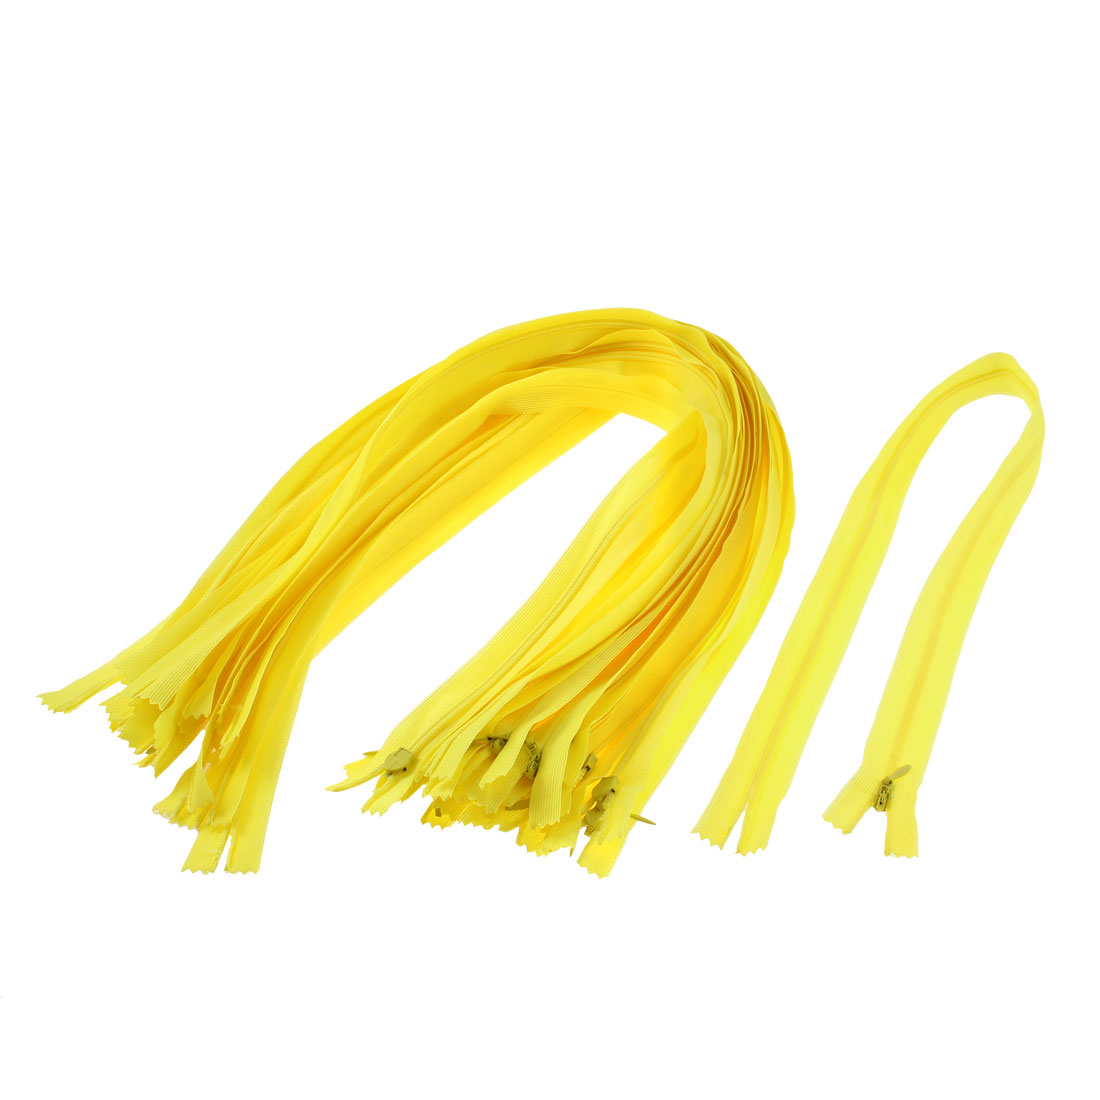 "Yellow Nylon Zippers Tailor Sewing Tools 24"" Long 20 Pcs"